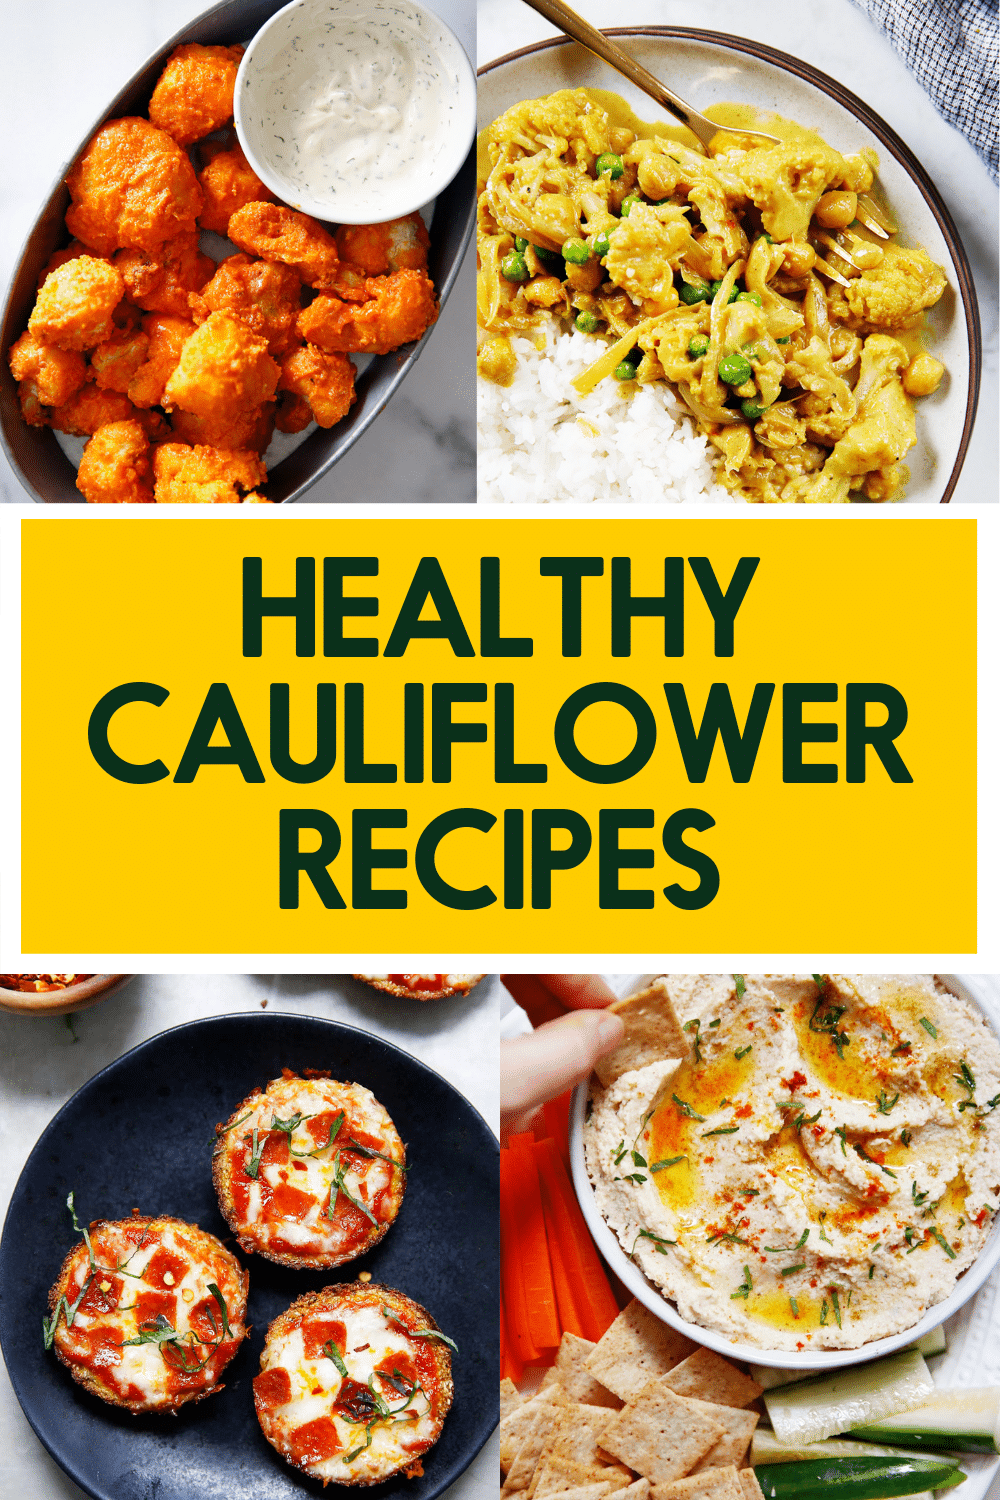 Healthy cauliflower recipes.